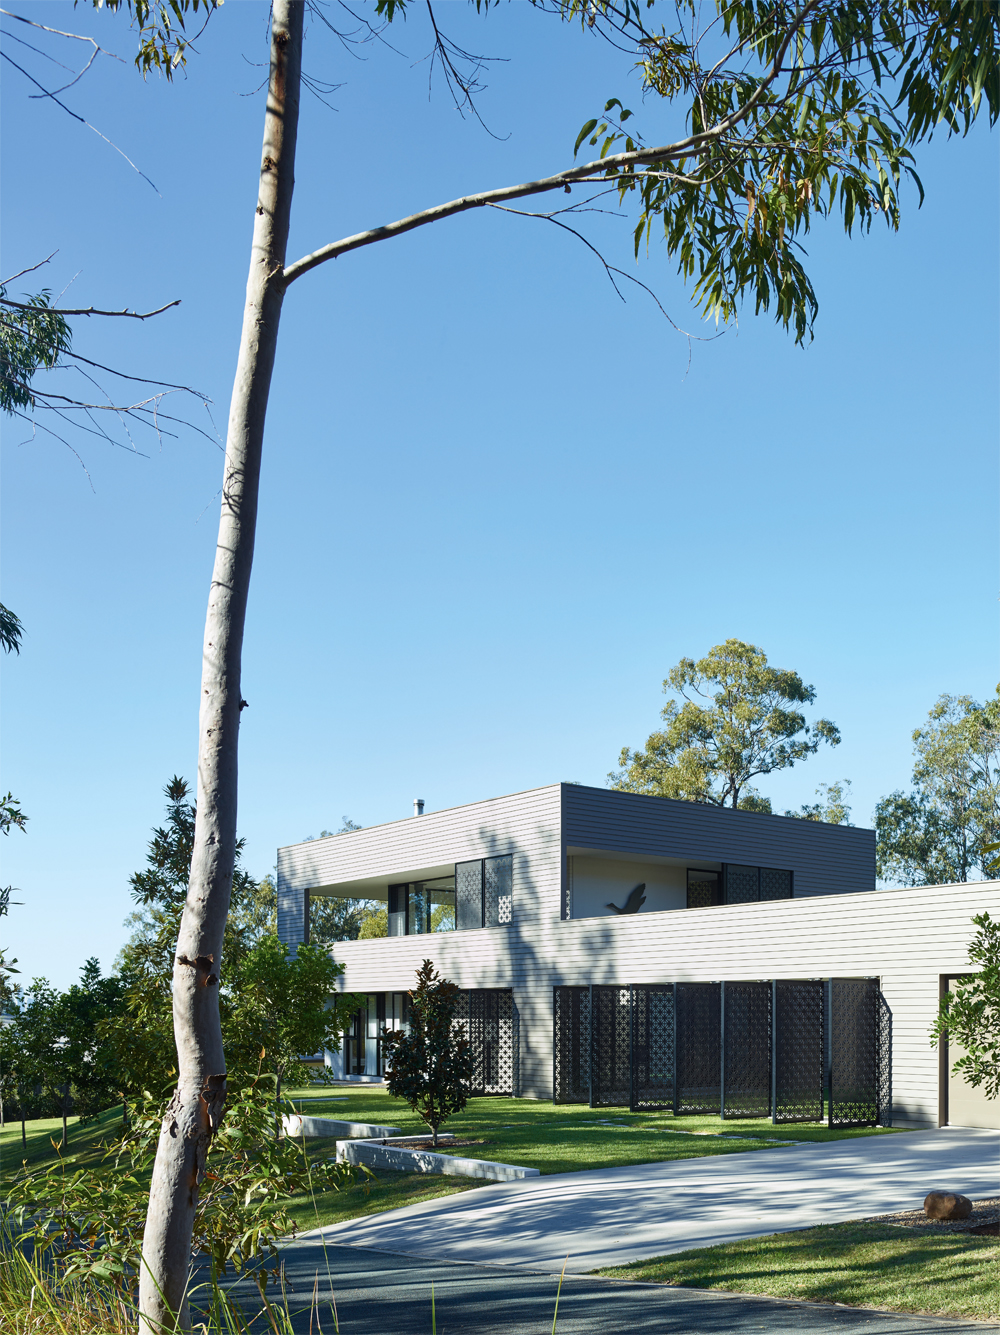 Grand Designs Australia: High Flyer - Architects' masterpiece - exterior of house 2